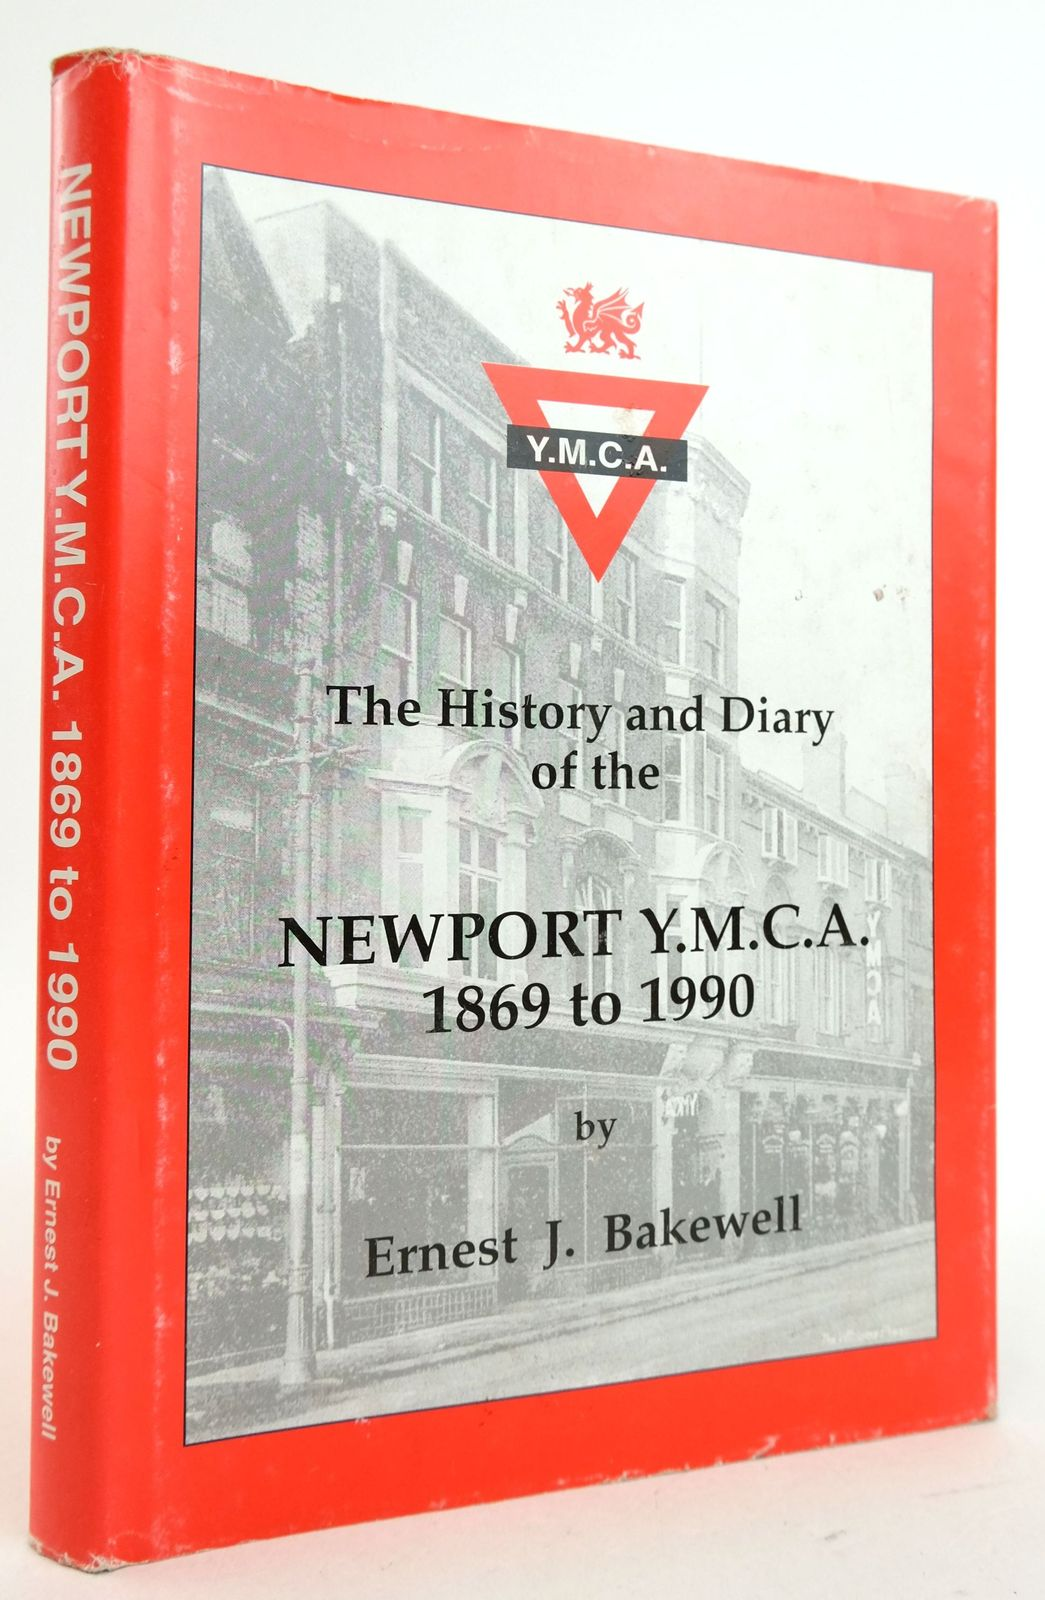 Photo of THE HISTORY AND DIARY OF THE NEWPORT Y.M.C.A. 1869 TO 1990- Stock Number: 1819901